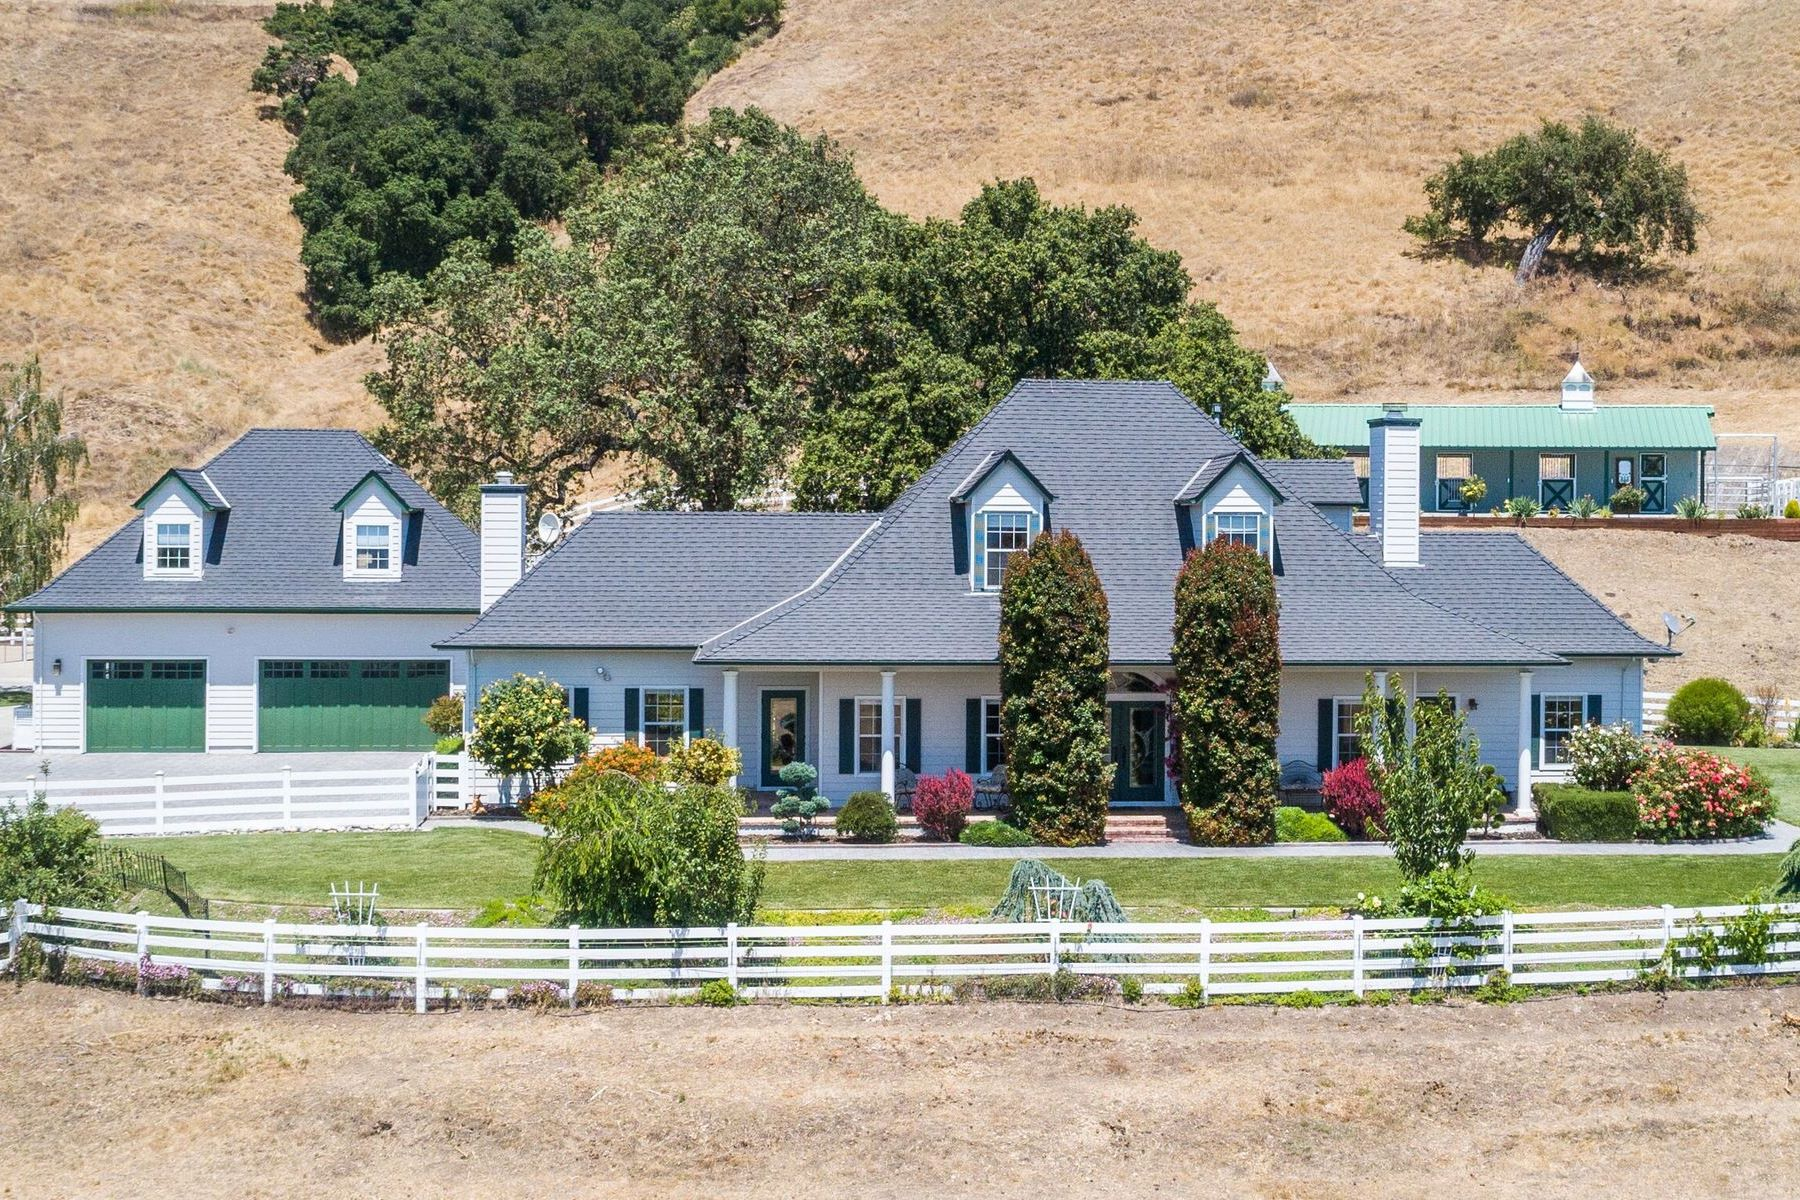 Vineyard Real Estate for Sale at Fantastic Retreat with Elegance for All 2563 Bridle Path Drive Gilroy, California 95020 United States